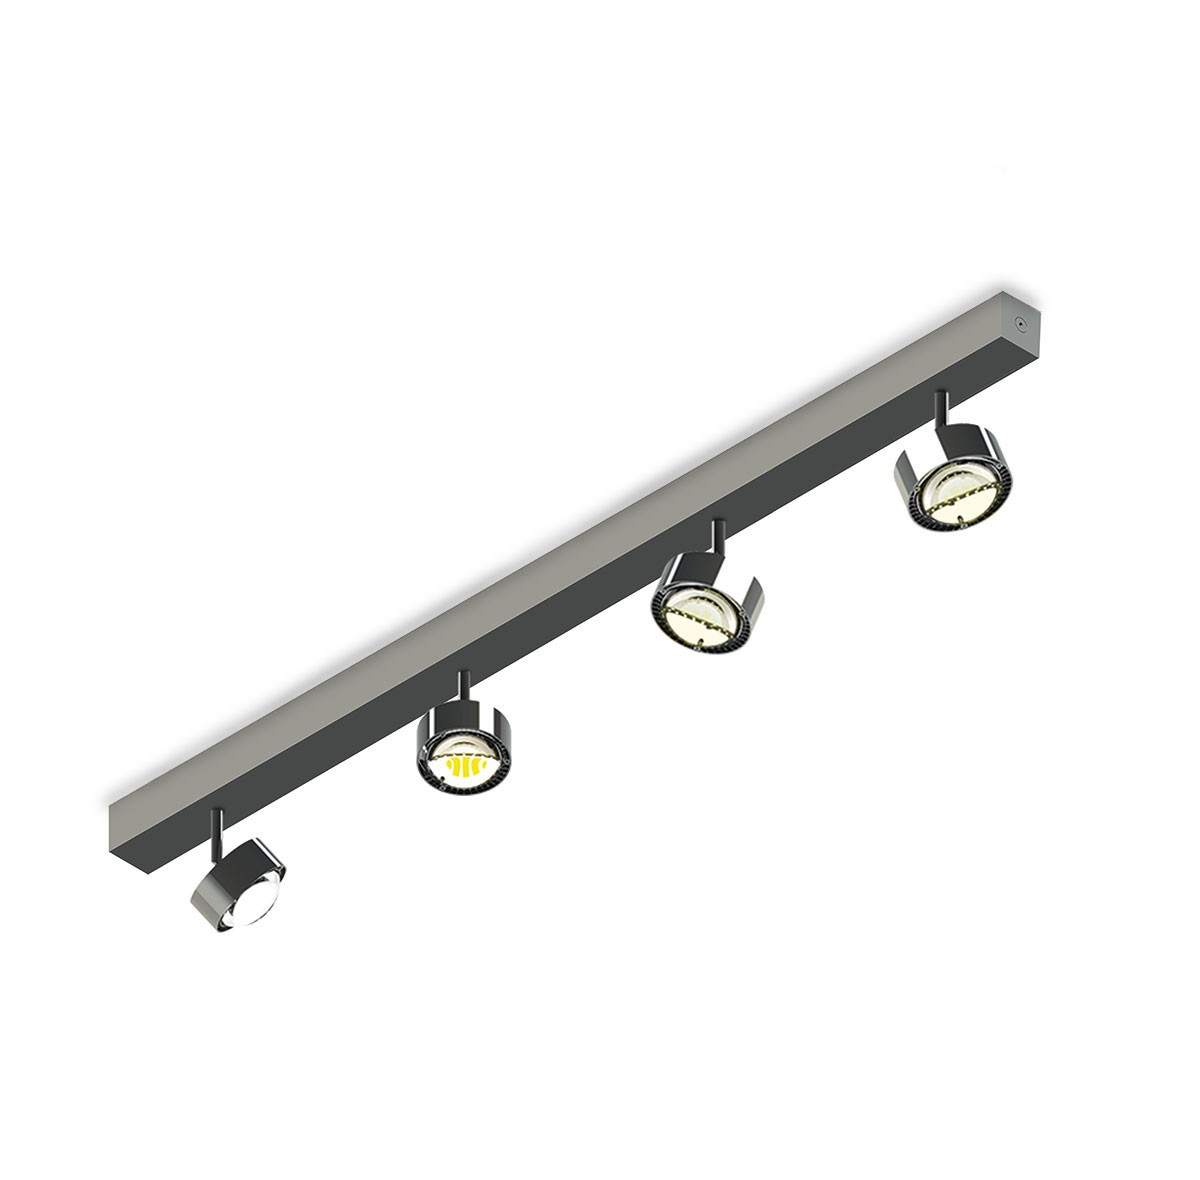 Top Light Puk Choice Turn Deckenleuchte, 105 cm